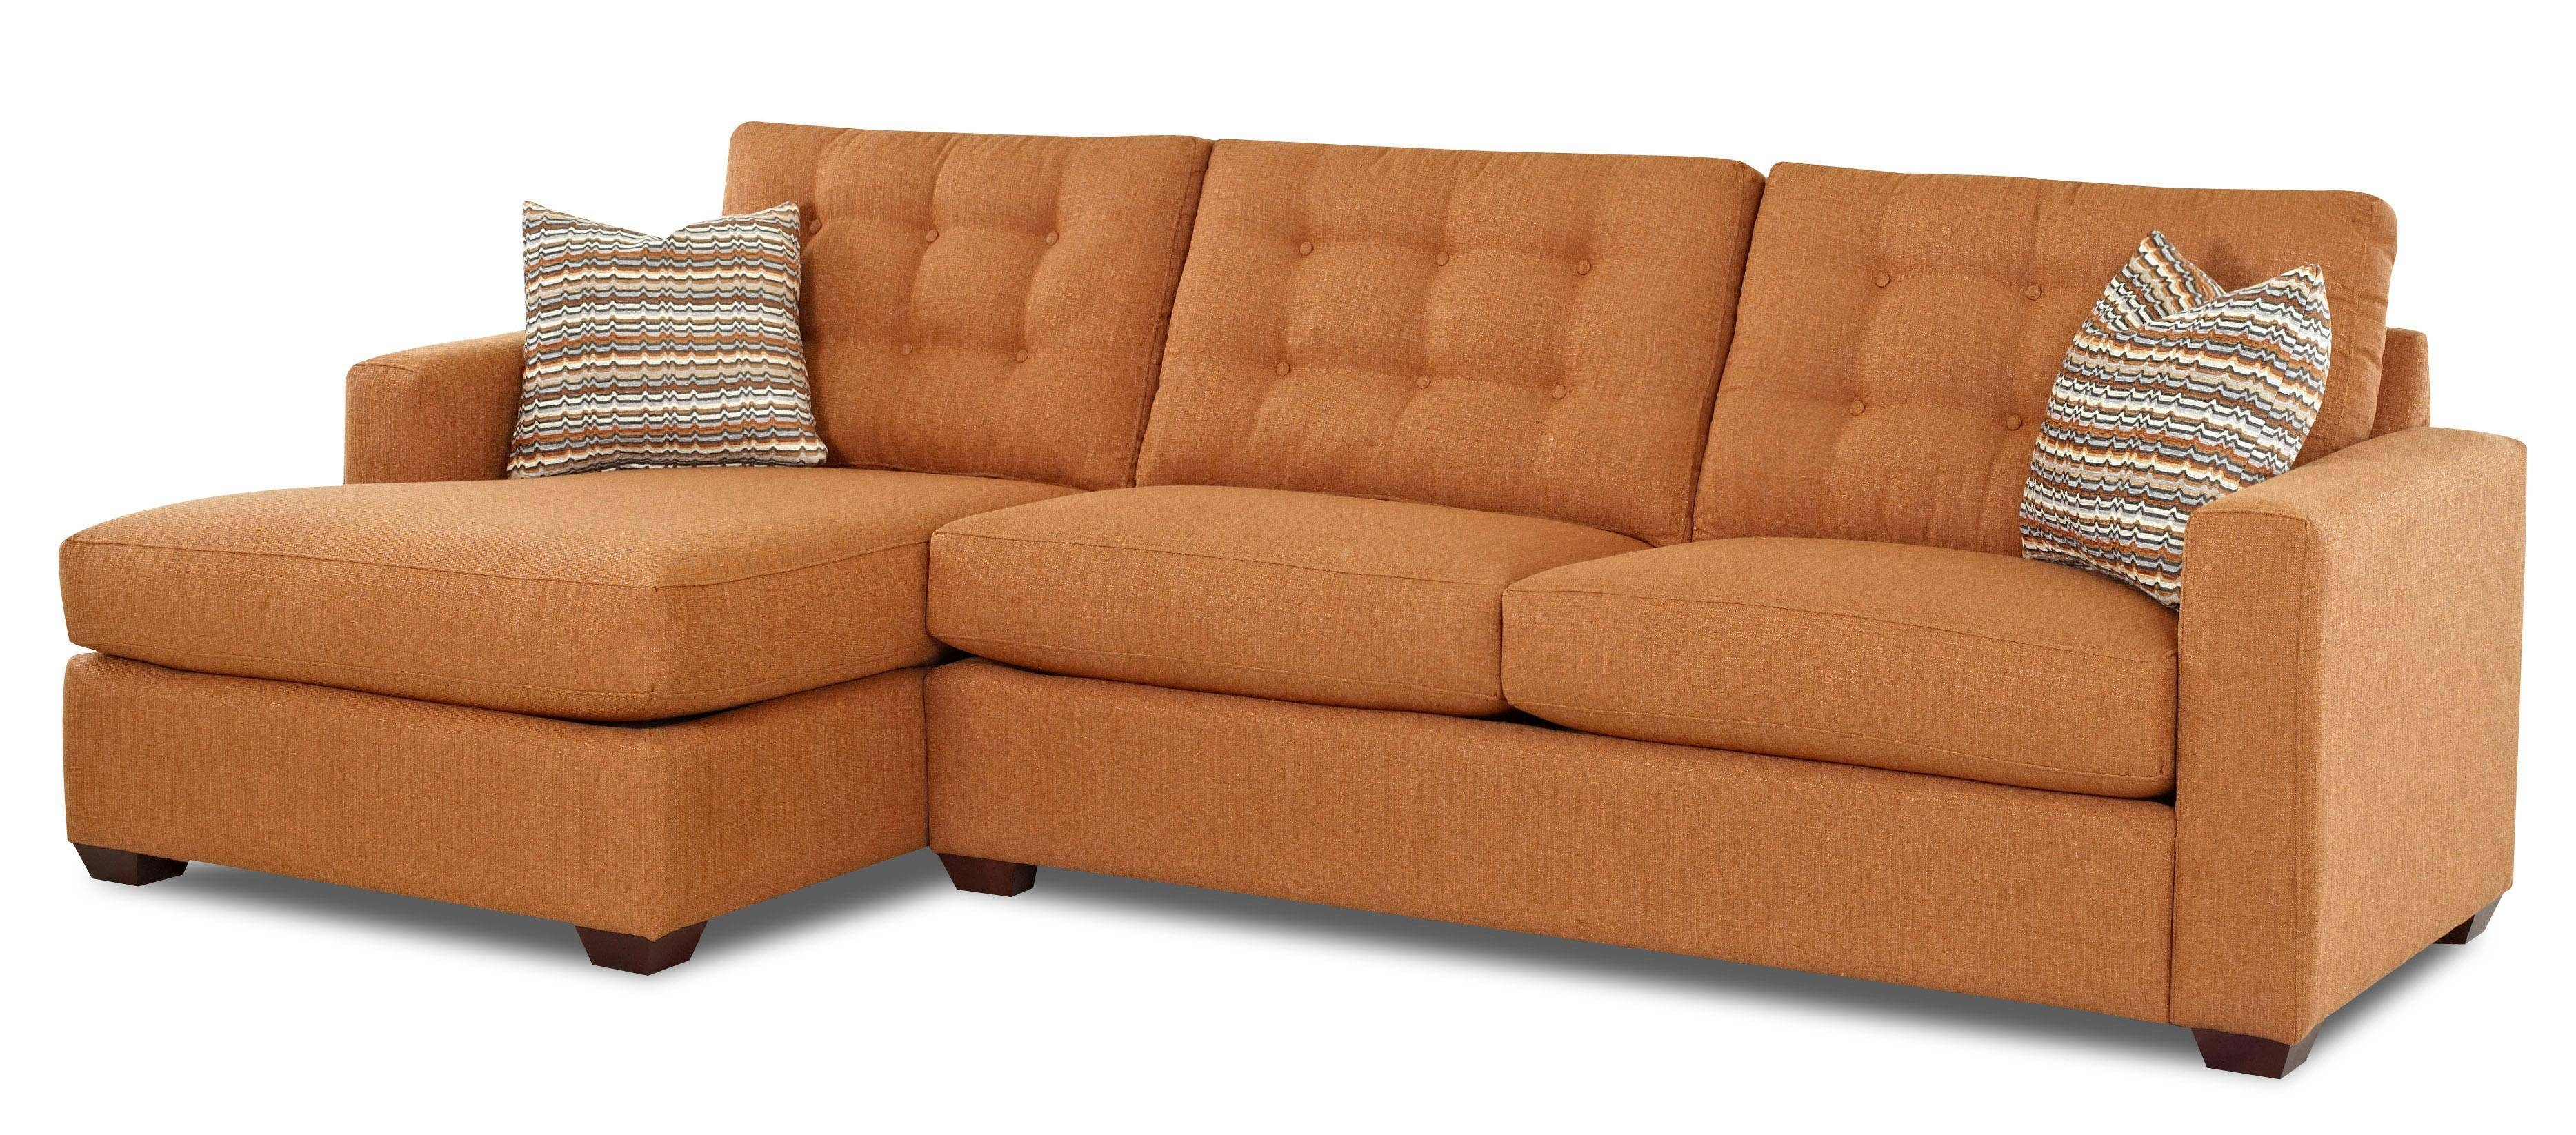 Sofas Center : Chaise Lounge Sofa Literarywondrous Pictures Ideas in Sofas With Chaise Longue (Image 26 of 30)